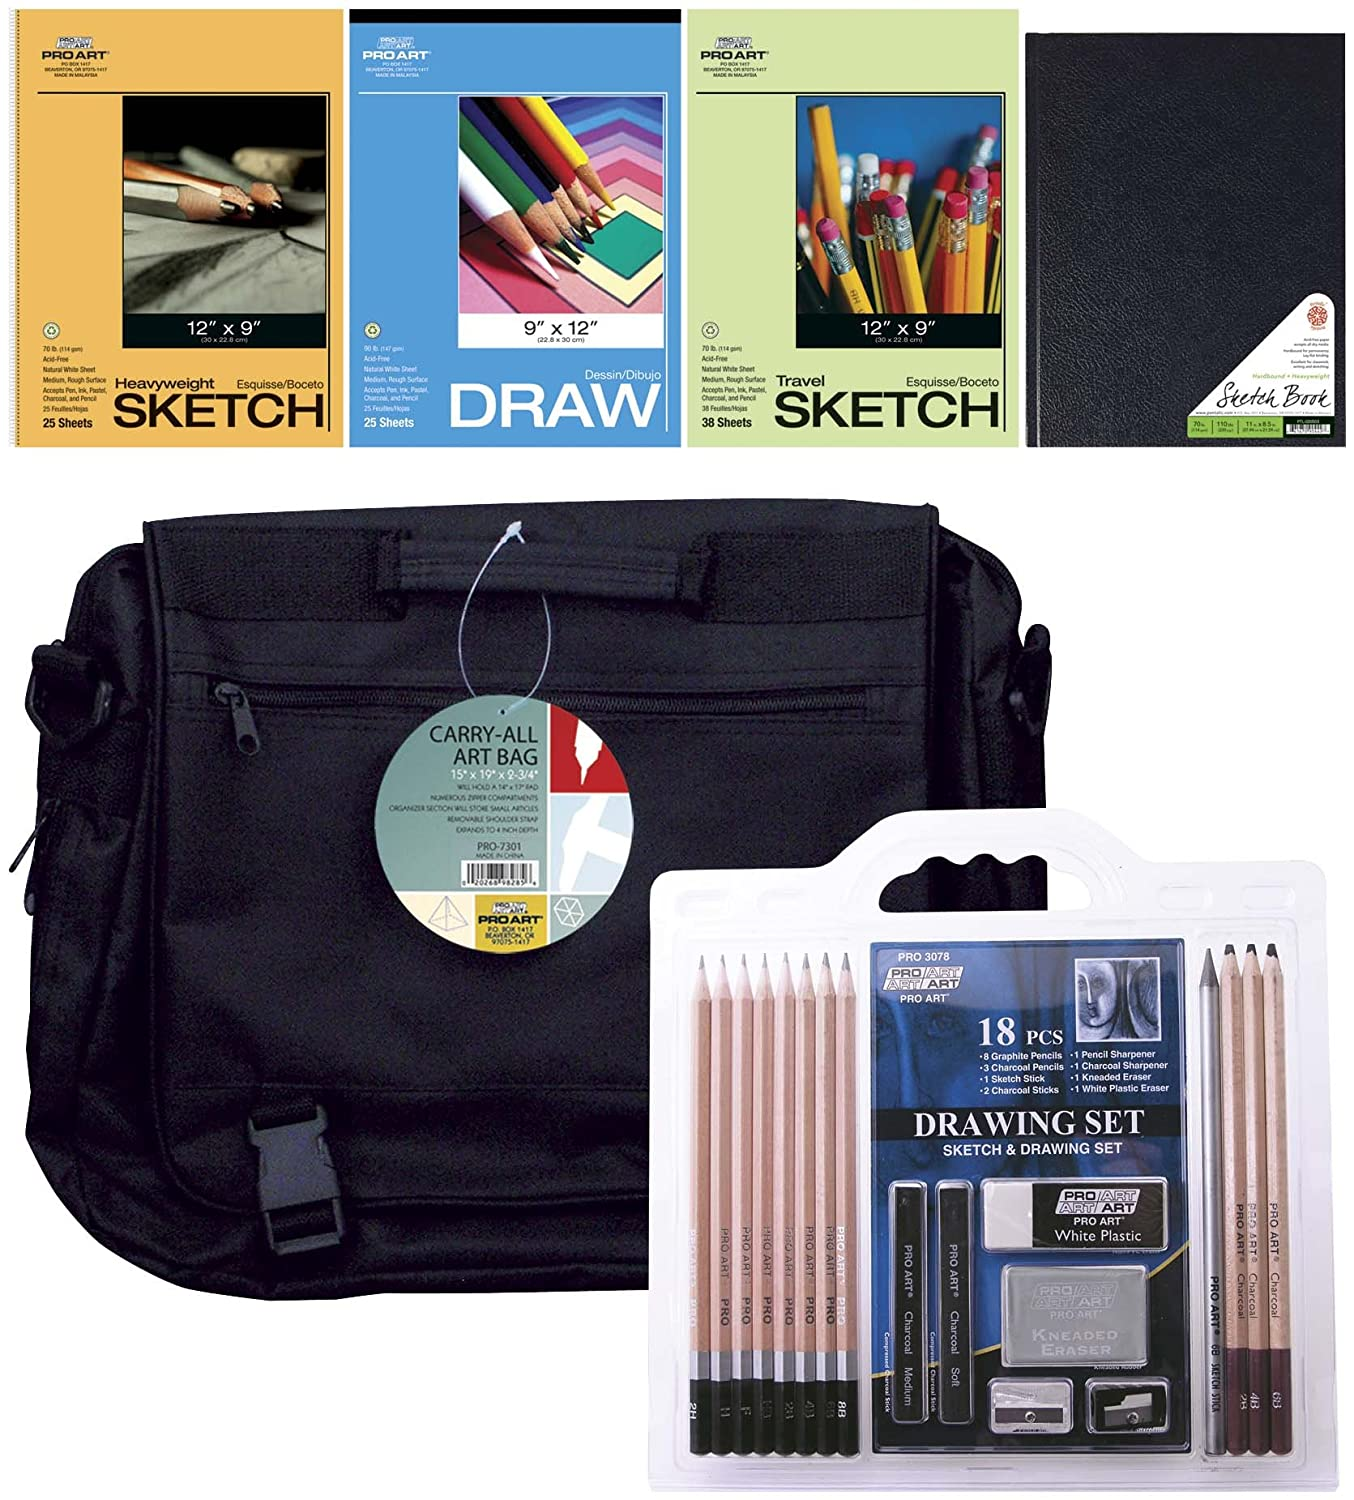 Pro Art On The Go Drawing Set 23 Piece Arts Club Car Carry All 2 Wiring Diagram Free Picture Crafts Sewing